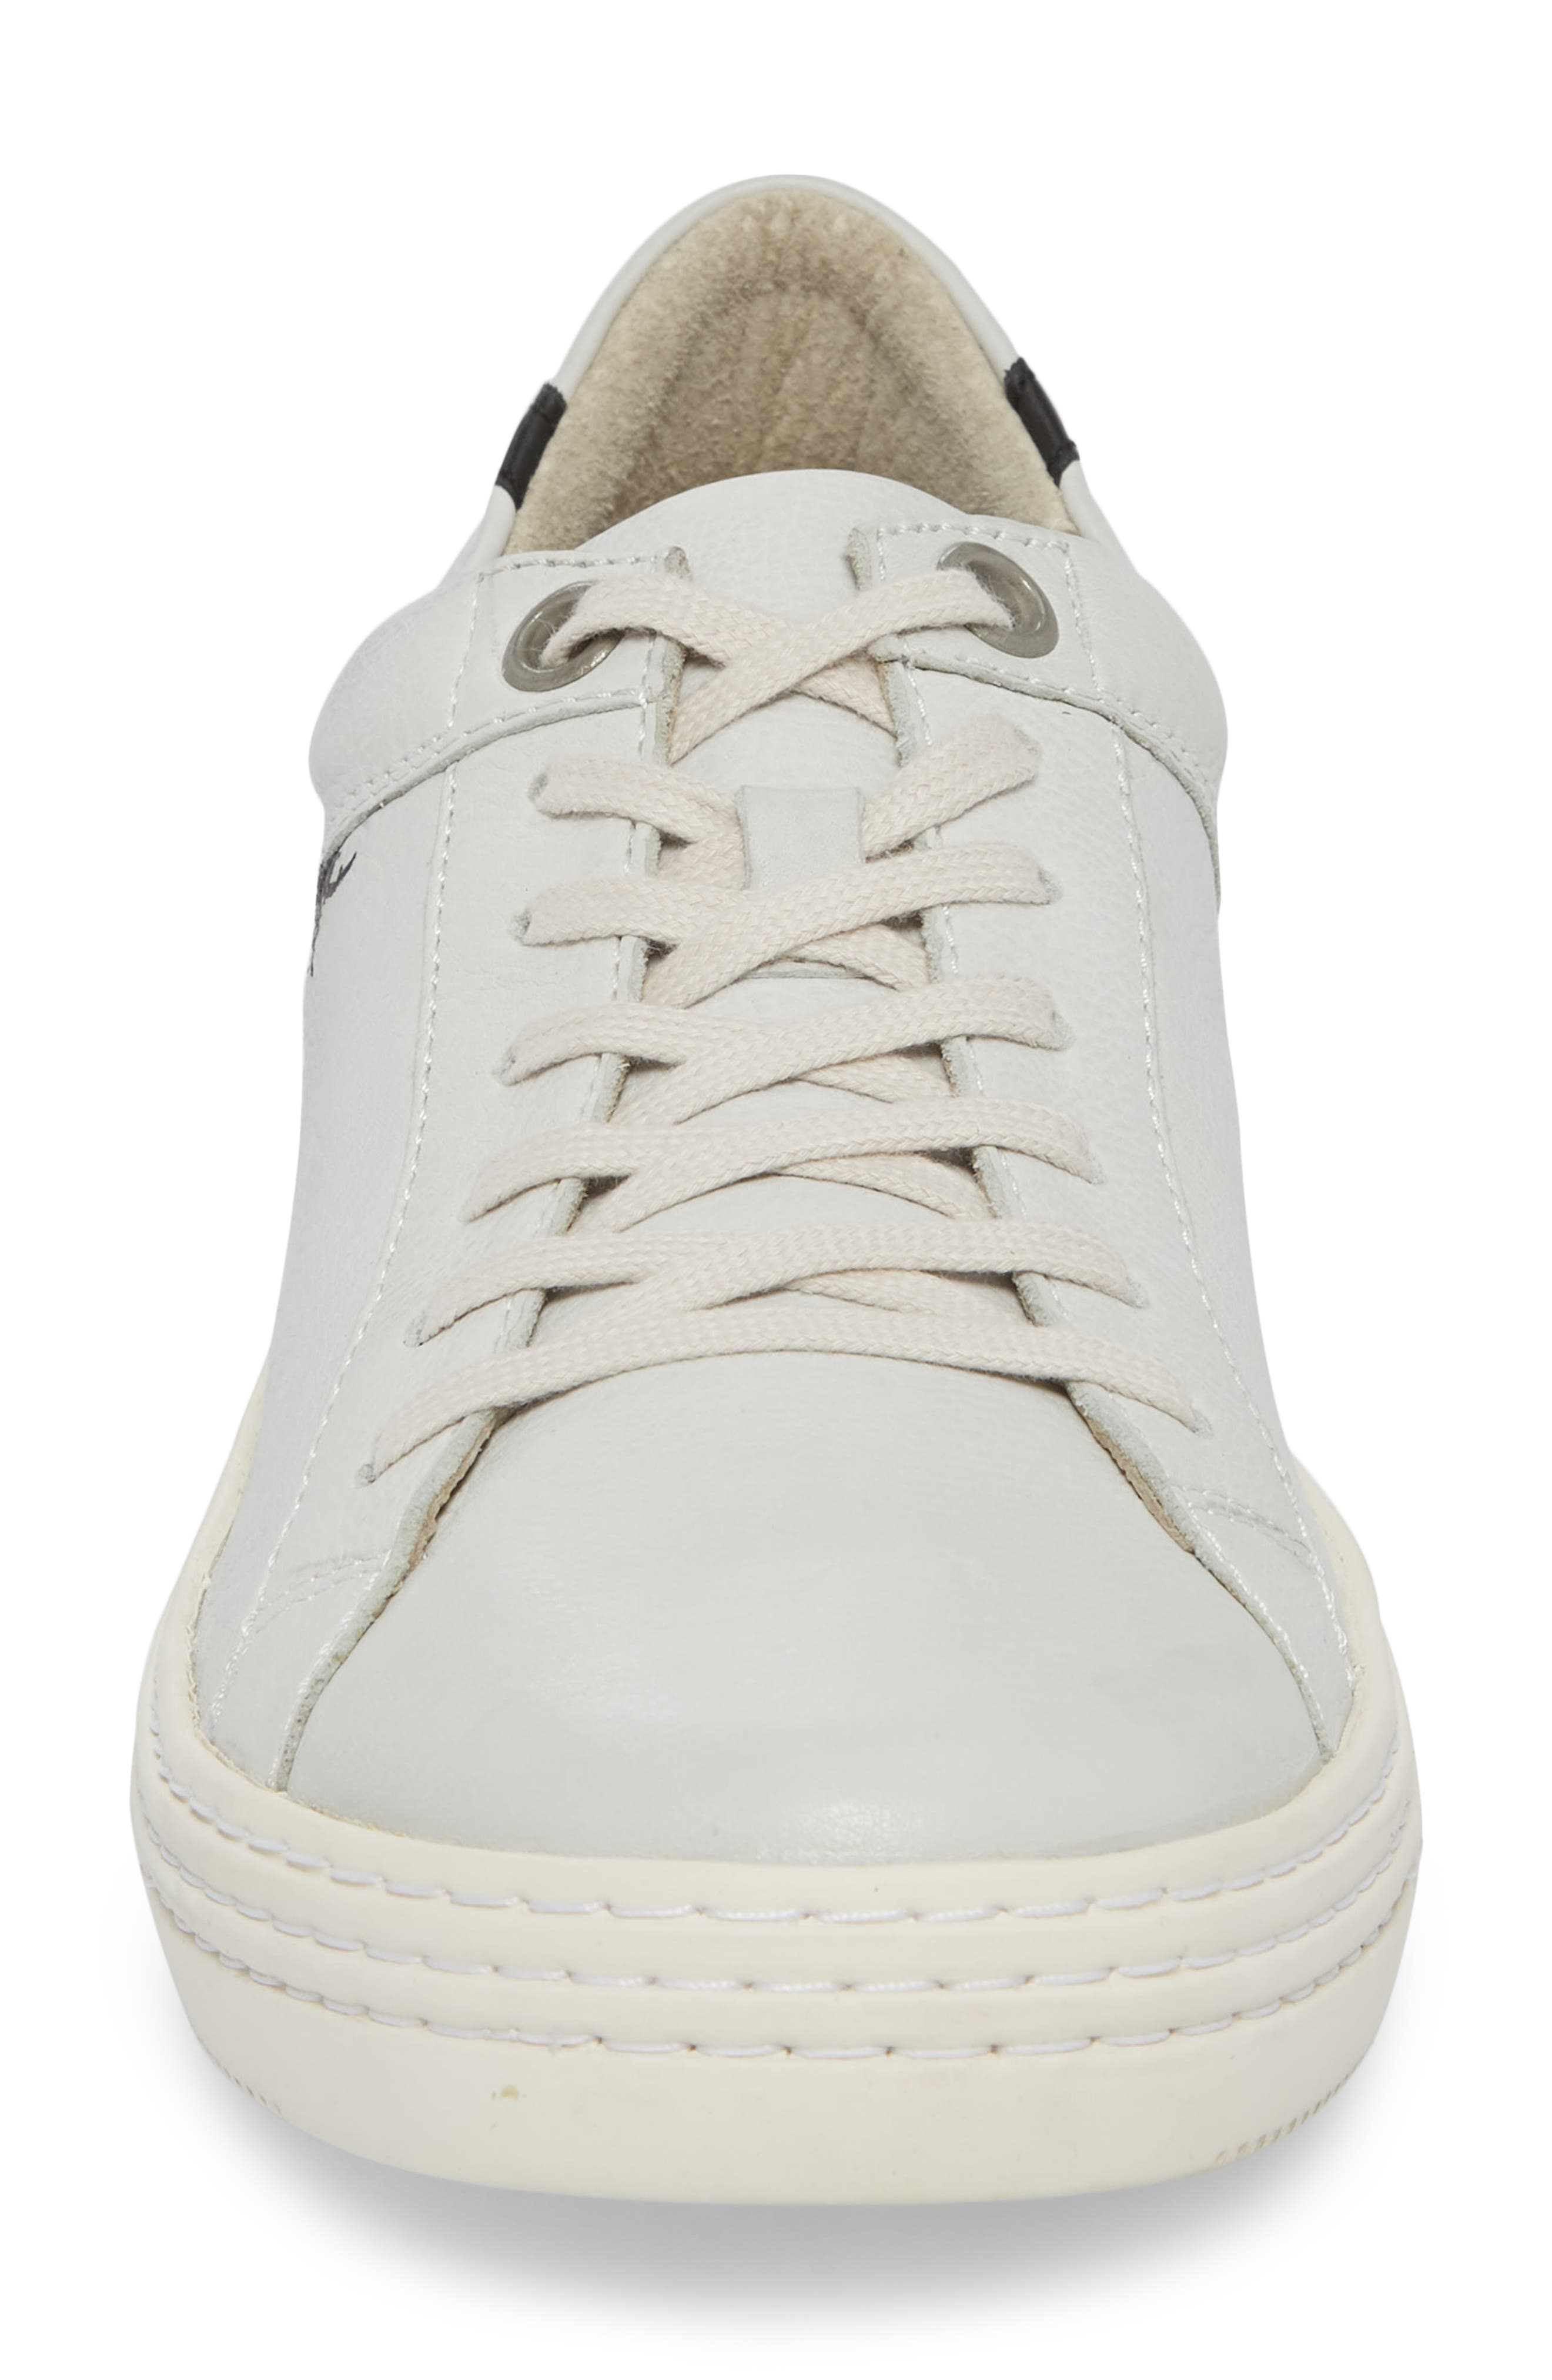 Sene Low Top Sneaker,                             Alternate thumbnail 4, color,                             Off White Leather